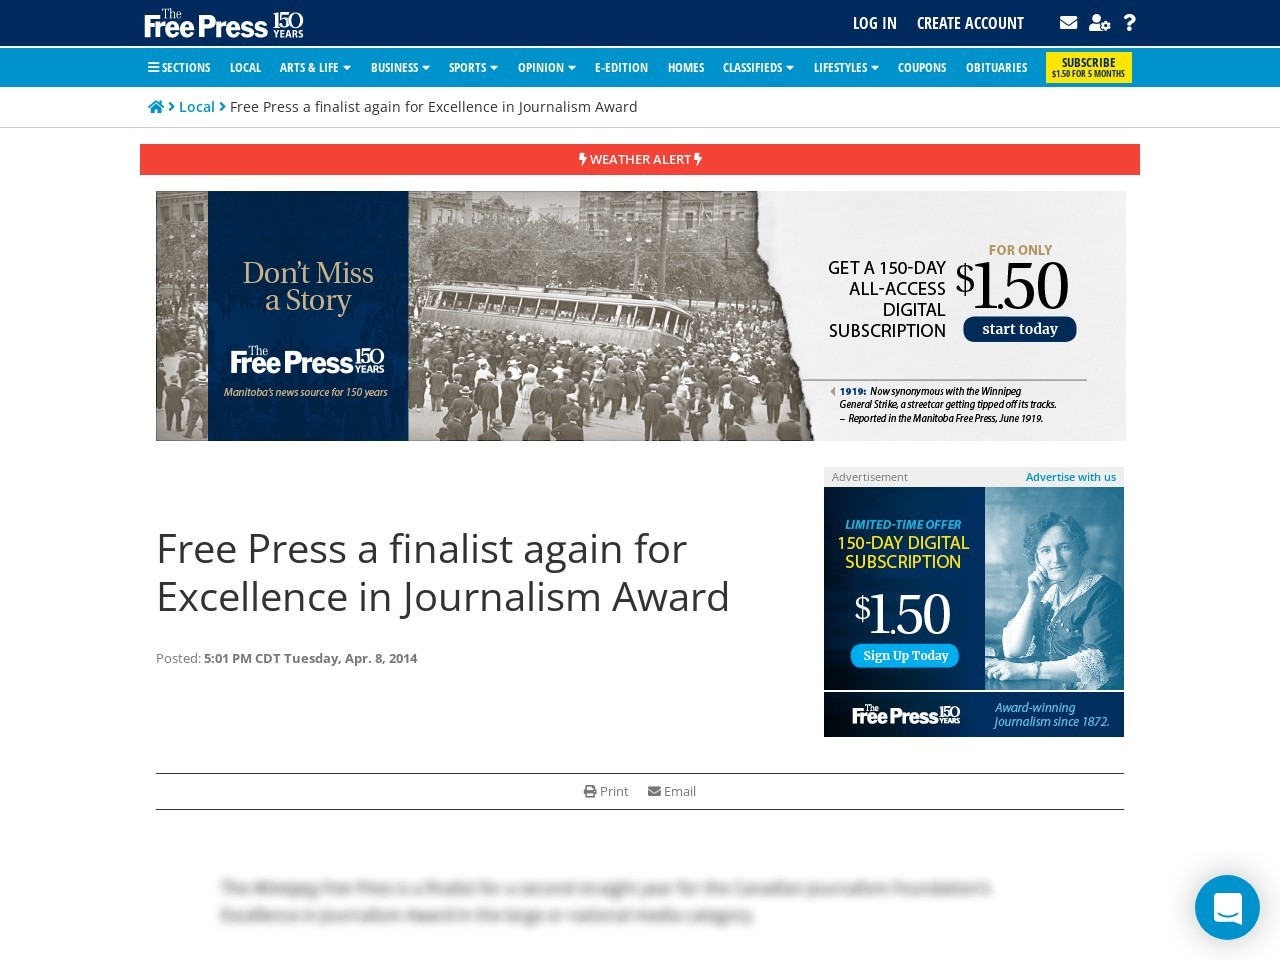 Free Press a finalist again for Excellence in Journalism Award